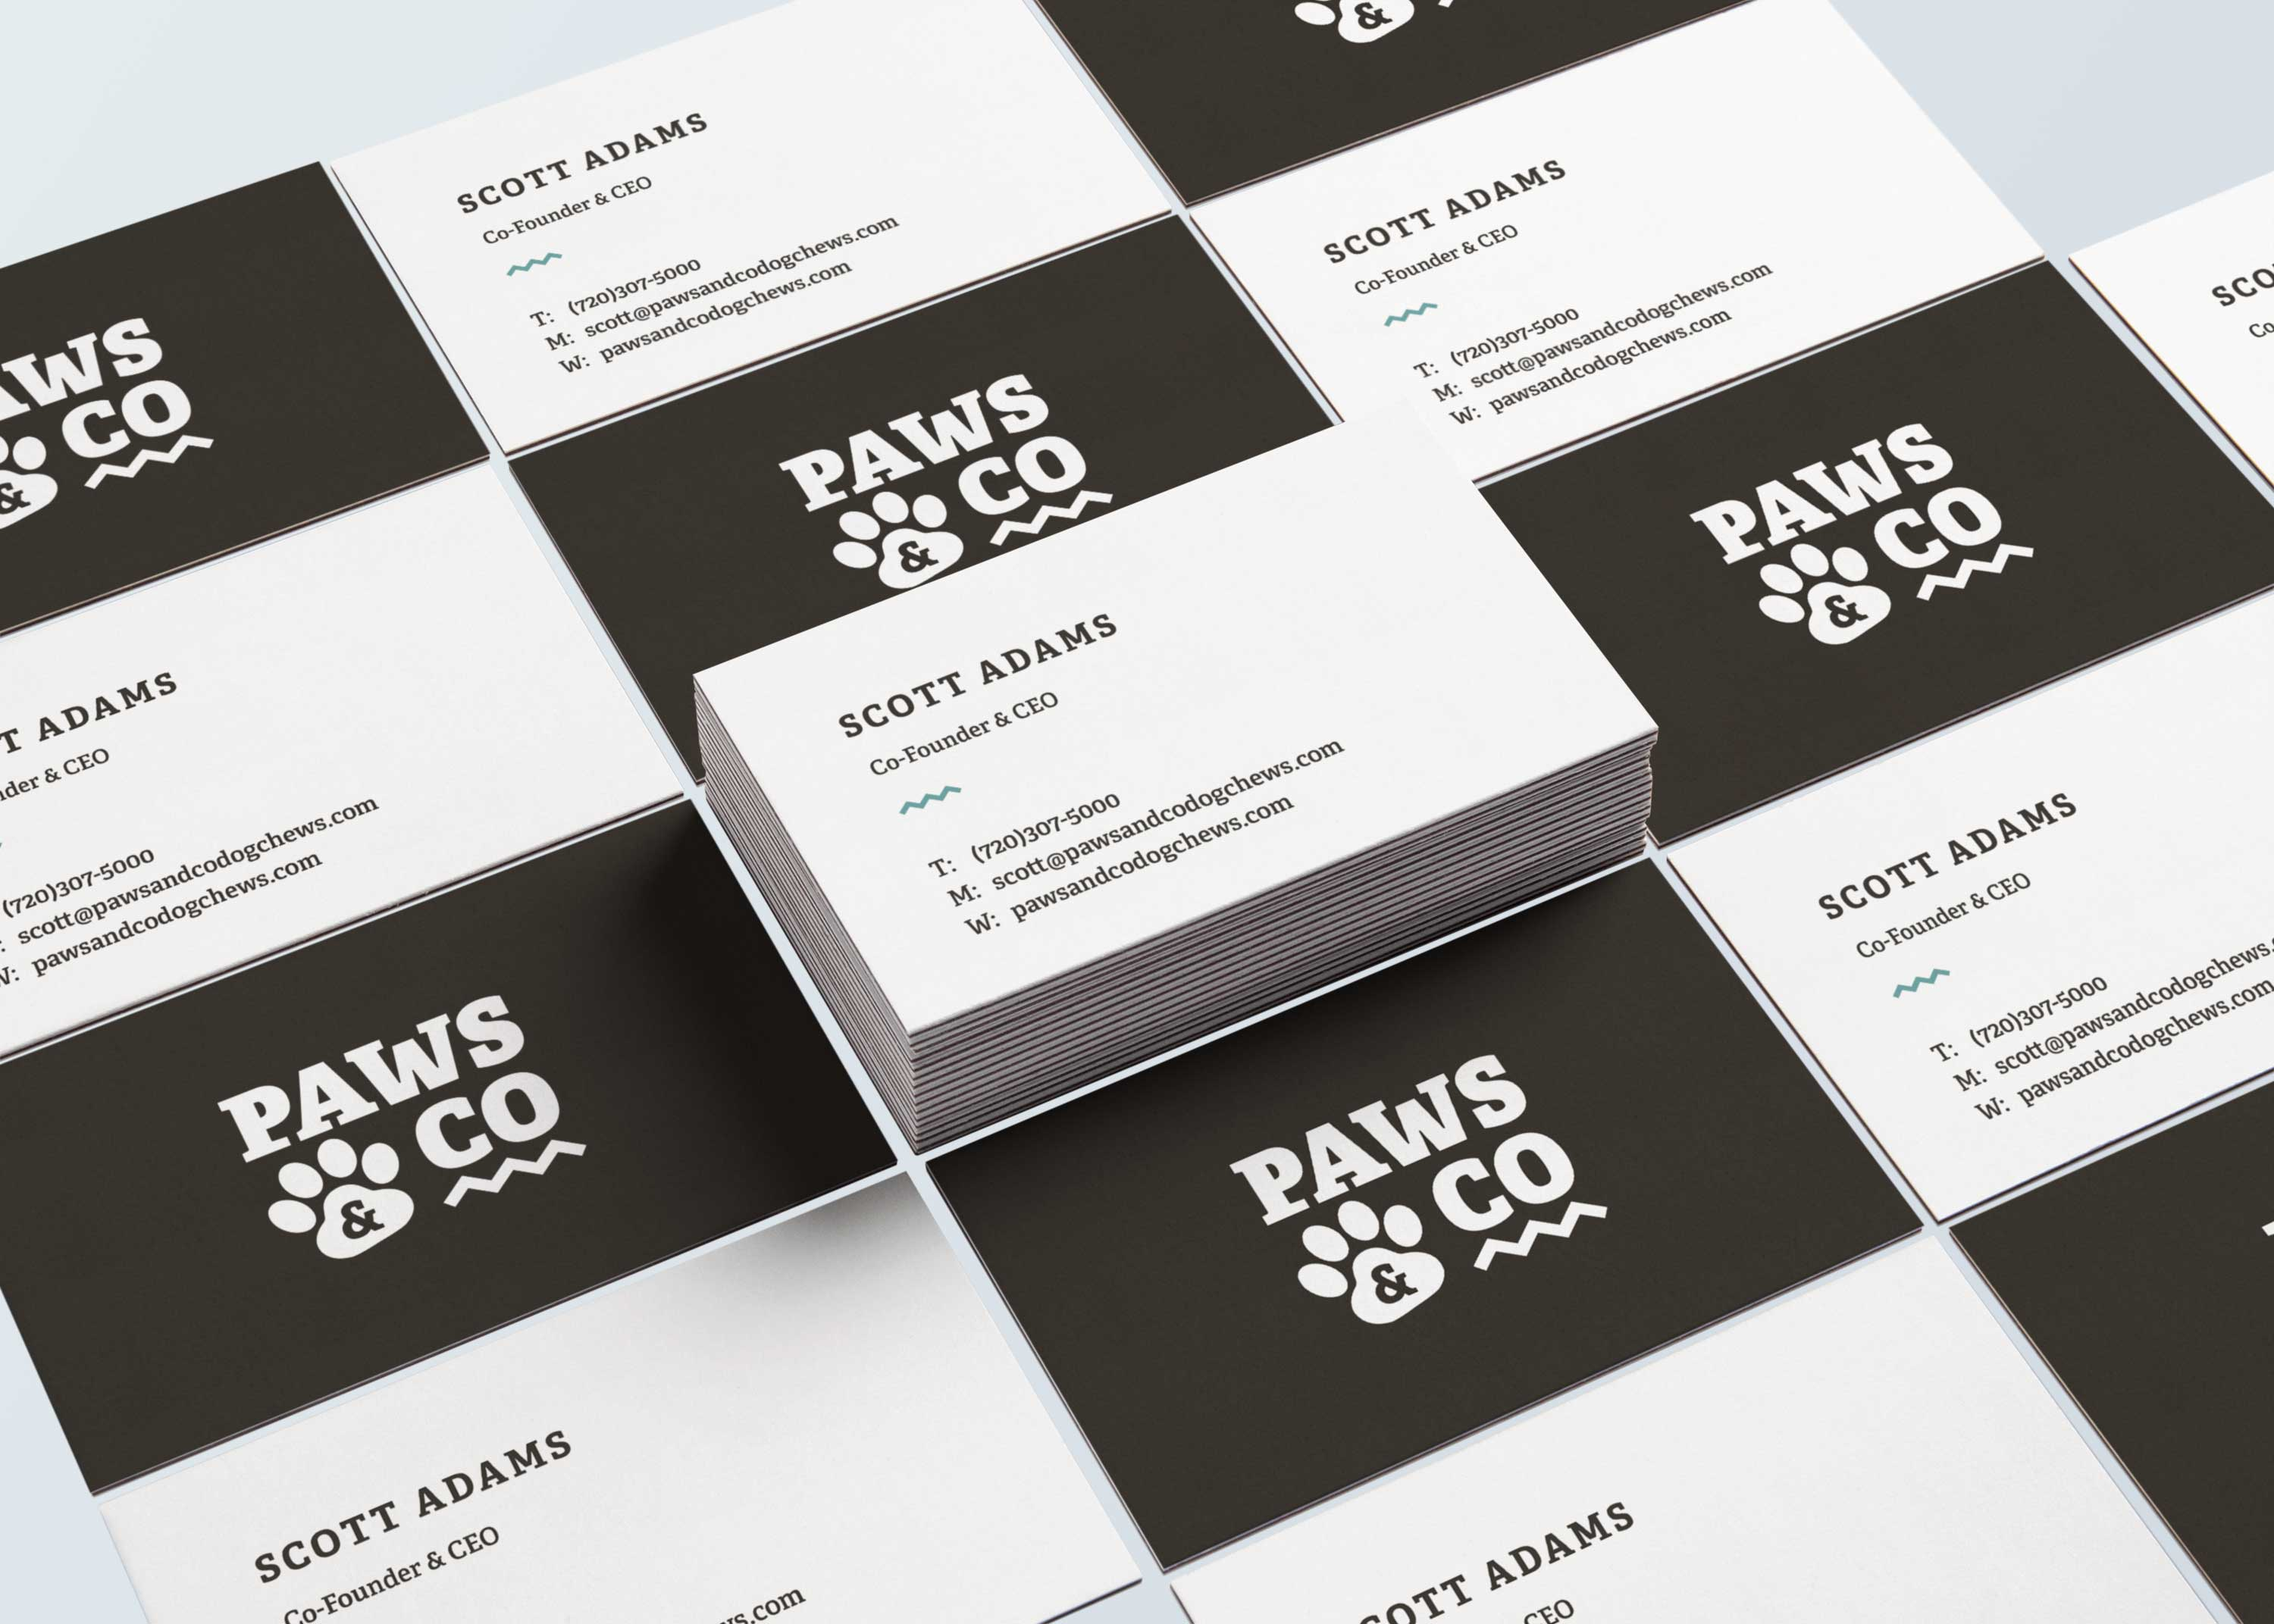 Paws & Co Business Cards